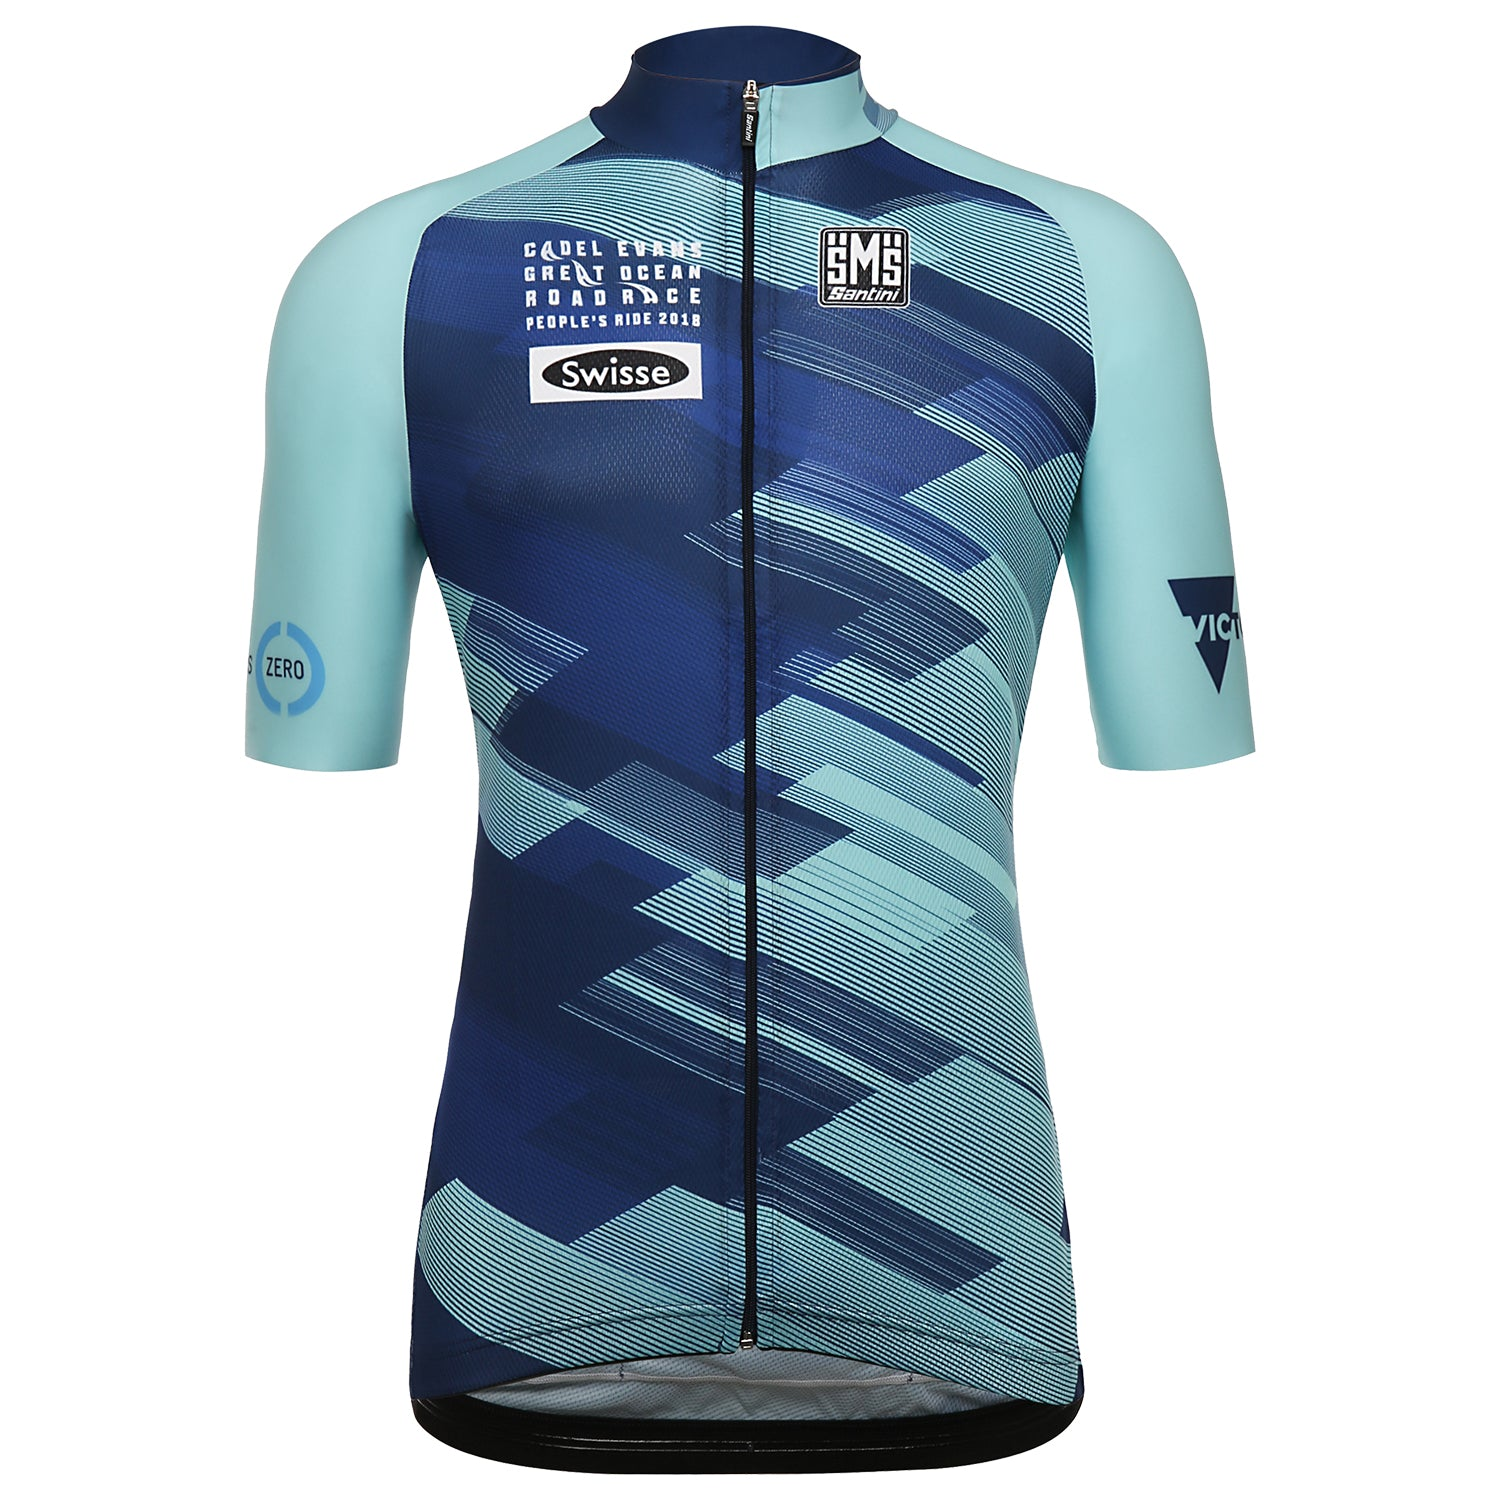 Cadel Evans Great Ocean Road Race People s Ride Jersey by Santini - Prendas  Ciclismo 34ce8e89d